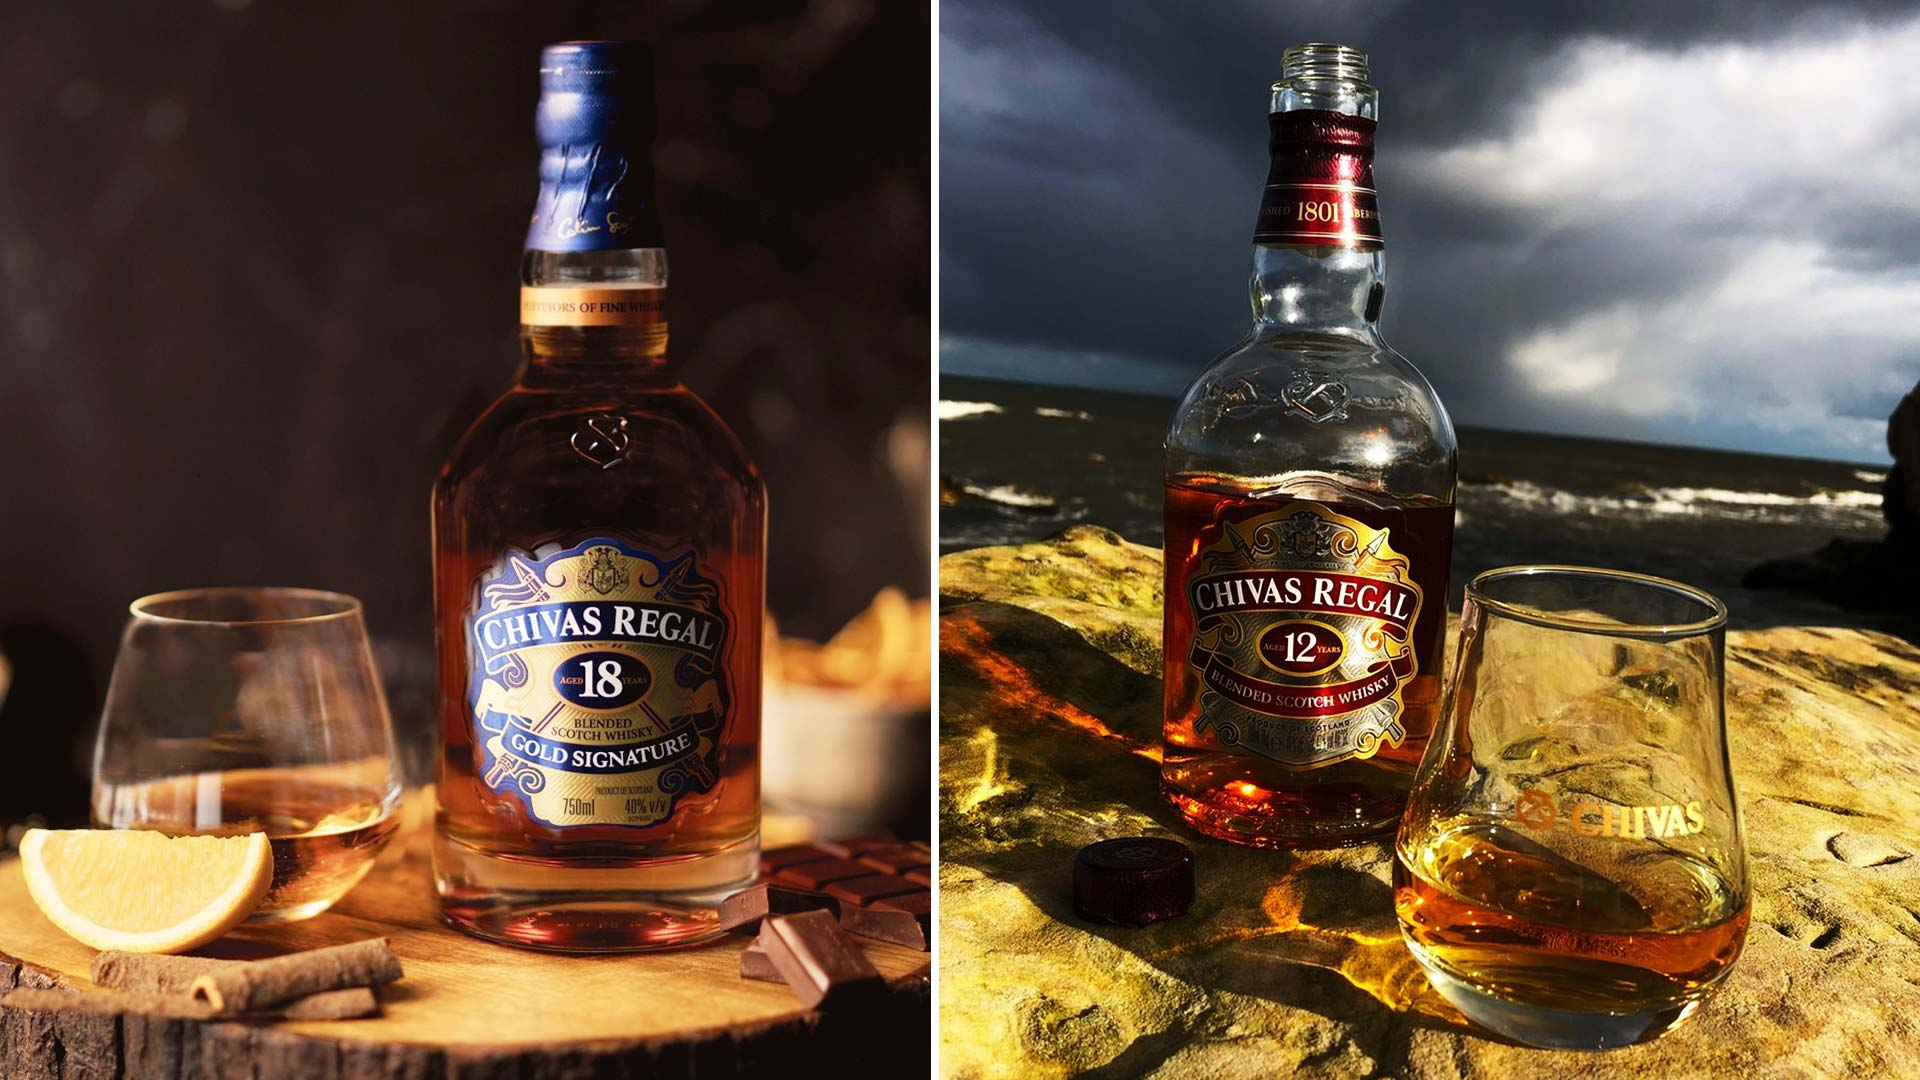 Chivas Regal 12 To Chivas Regal 18, 7 Premium Scotch Whiskies To Gift According To Zodiac Signs photo